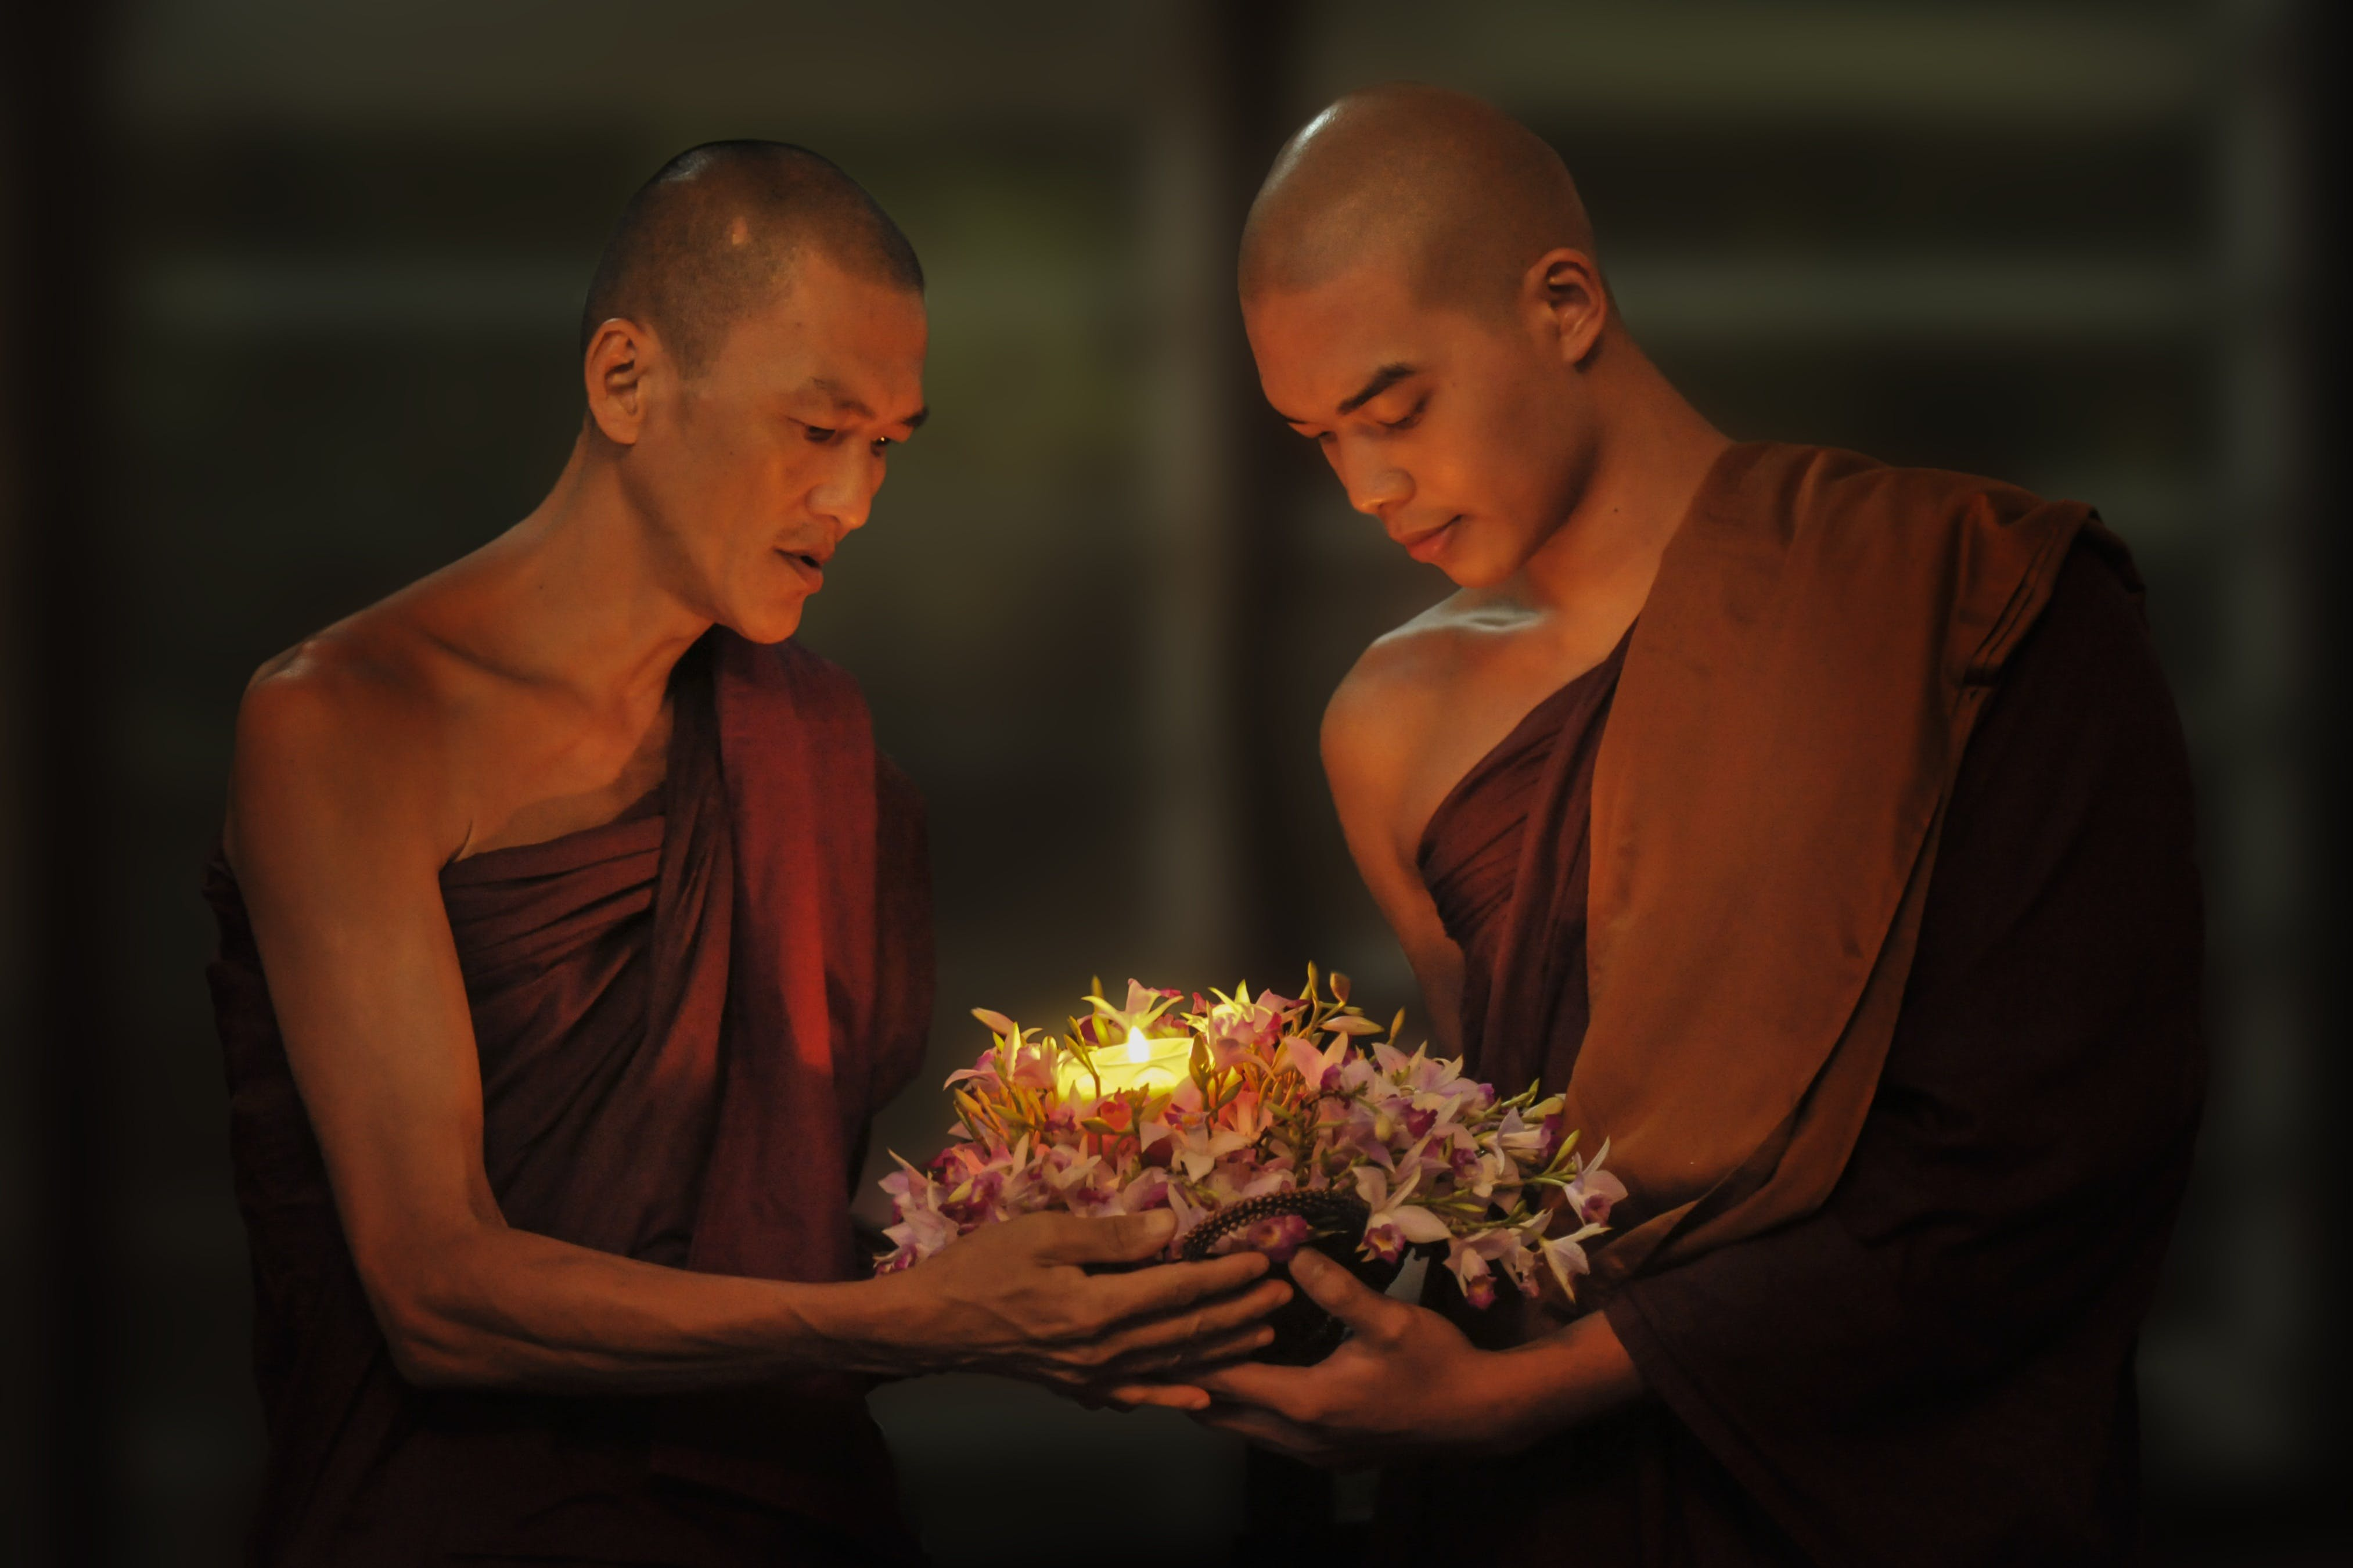 Two Man Monks Holding Light